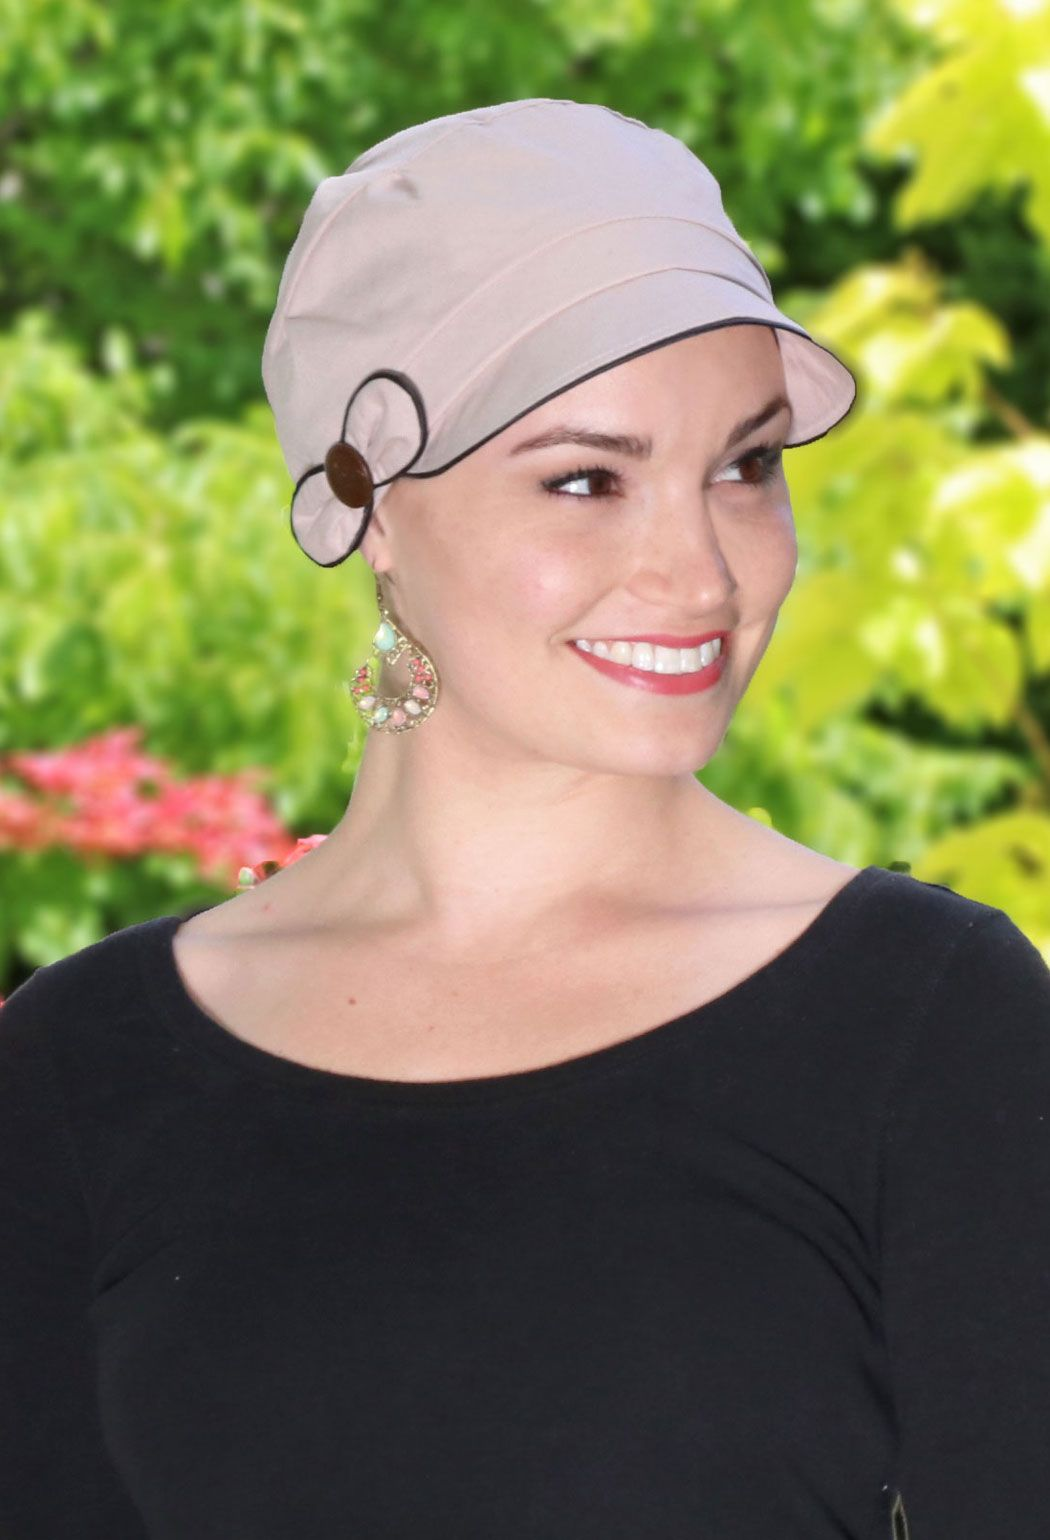 f6582c7fe7882 Barcelona soft cotton hat for women with small heads. Perfect coverage for  cancer patients and women with hair loss.